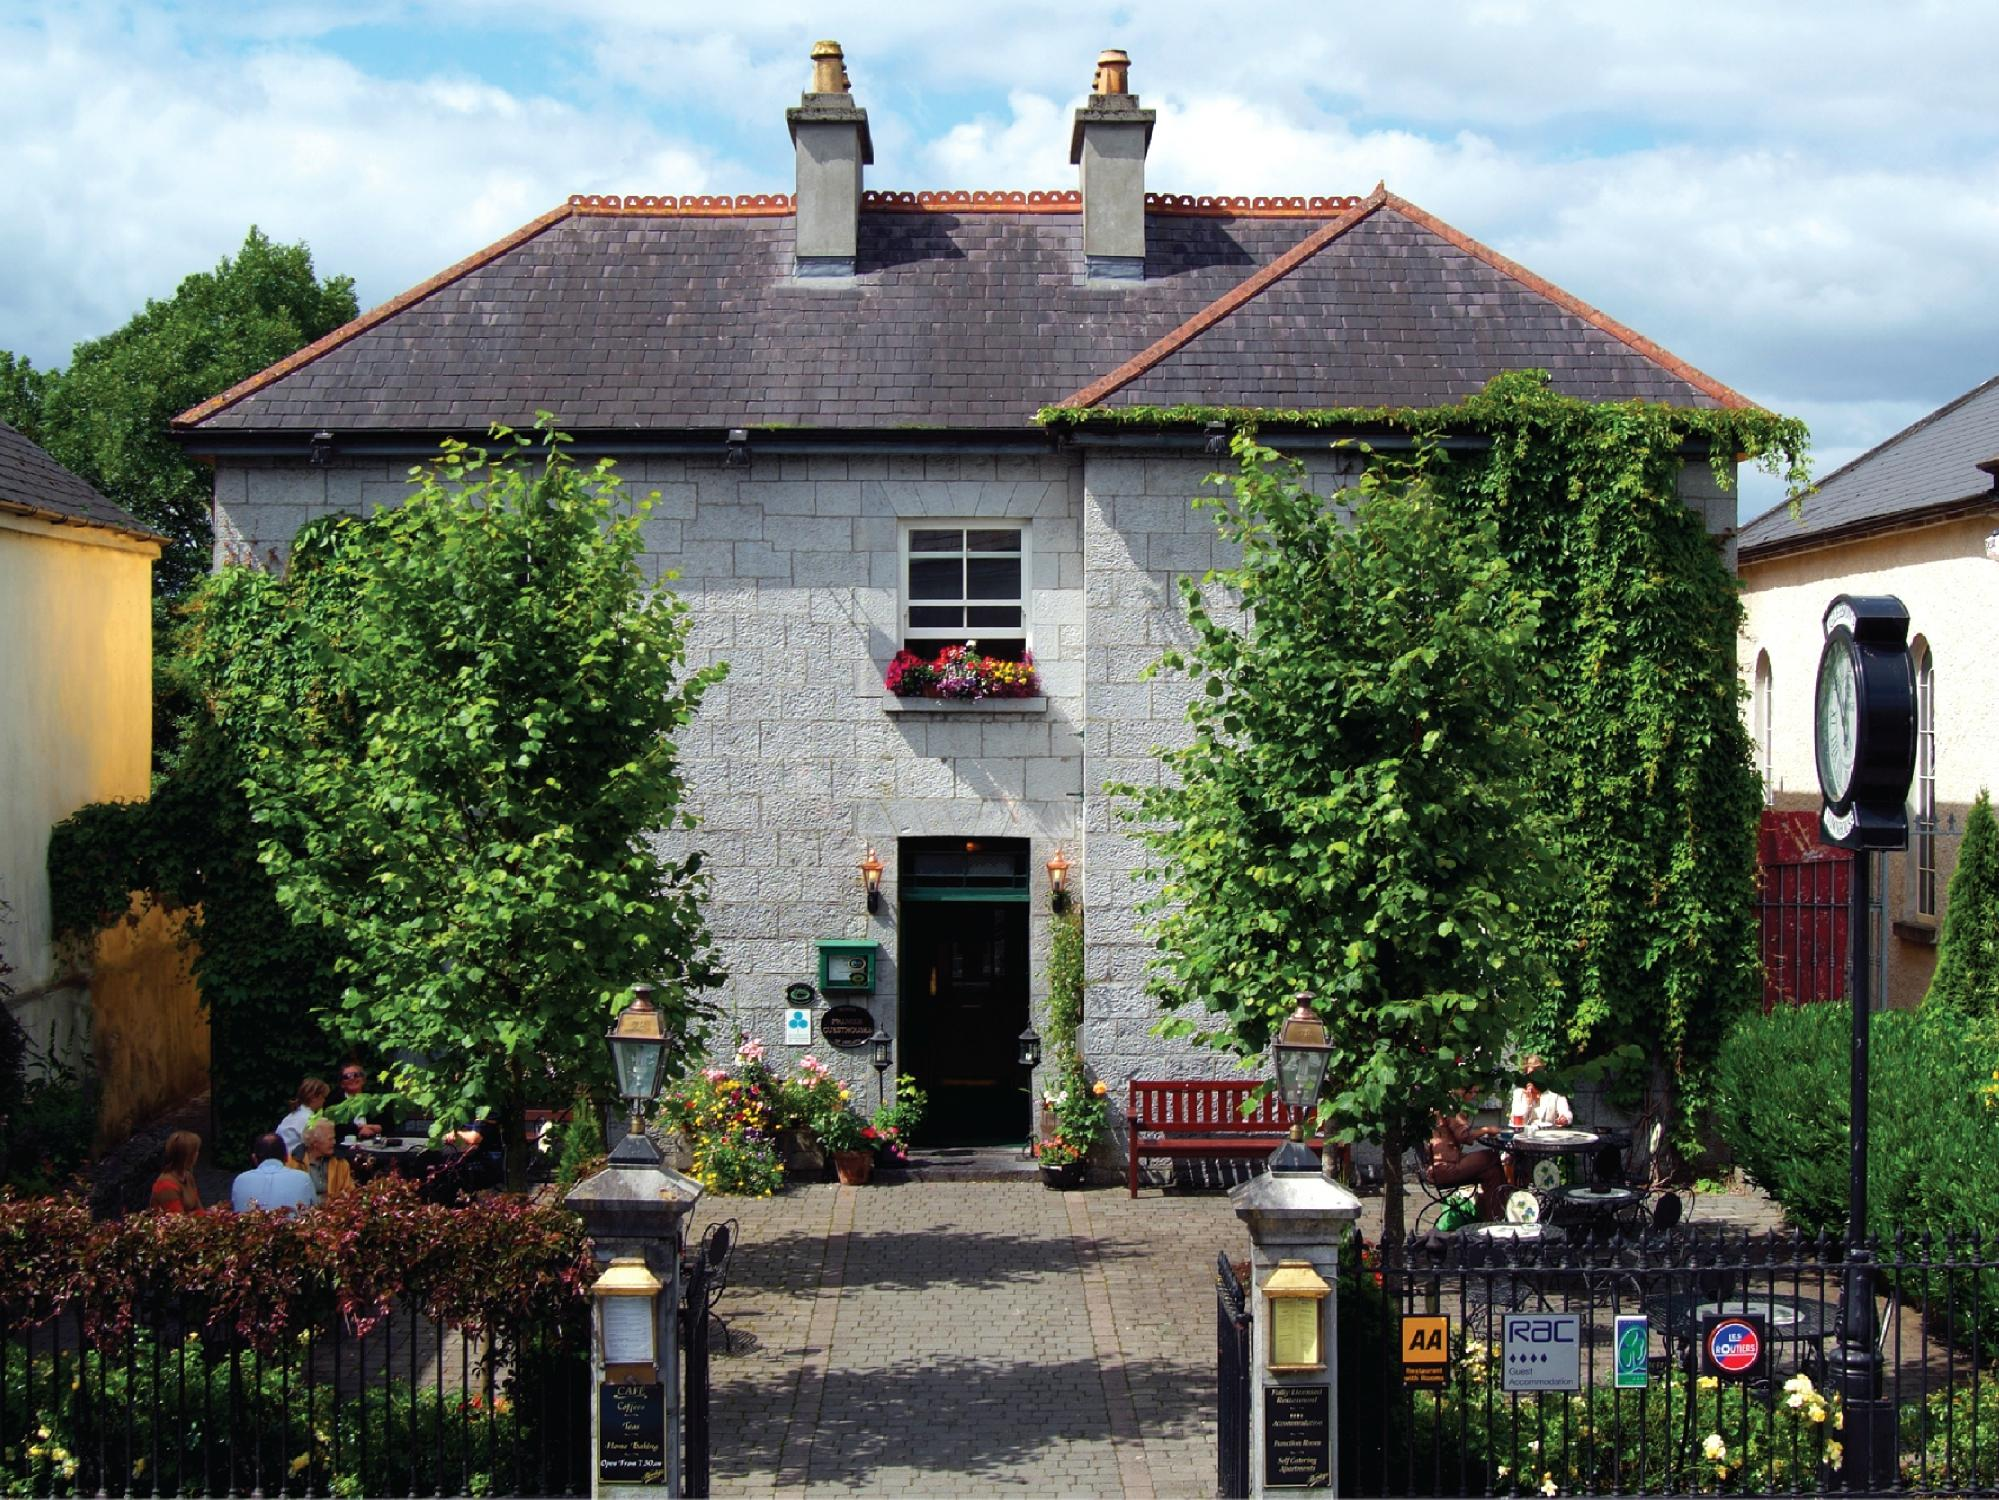 Gleeson's Townhouse and Restaurant